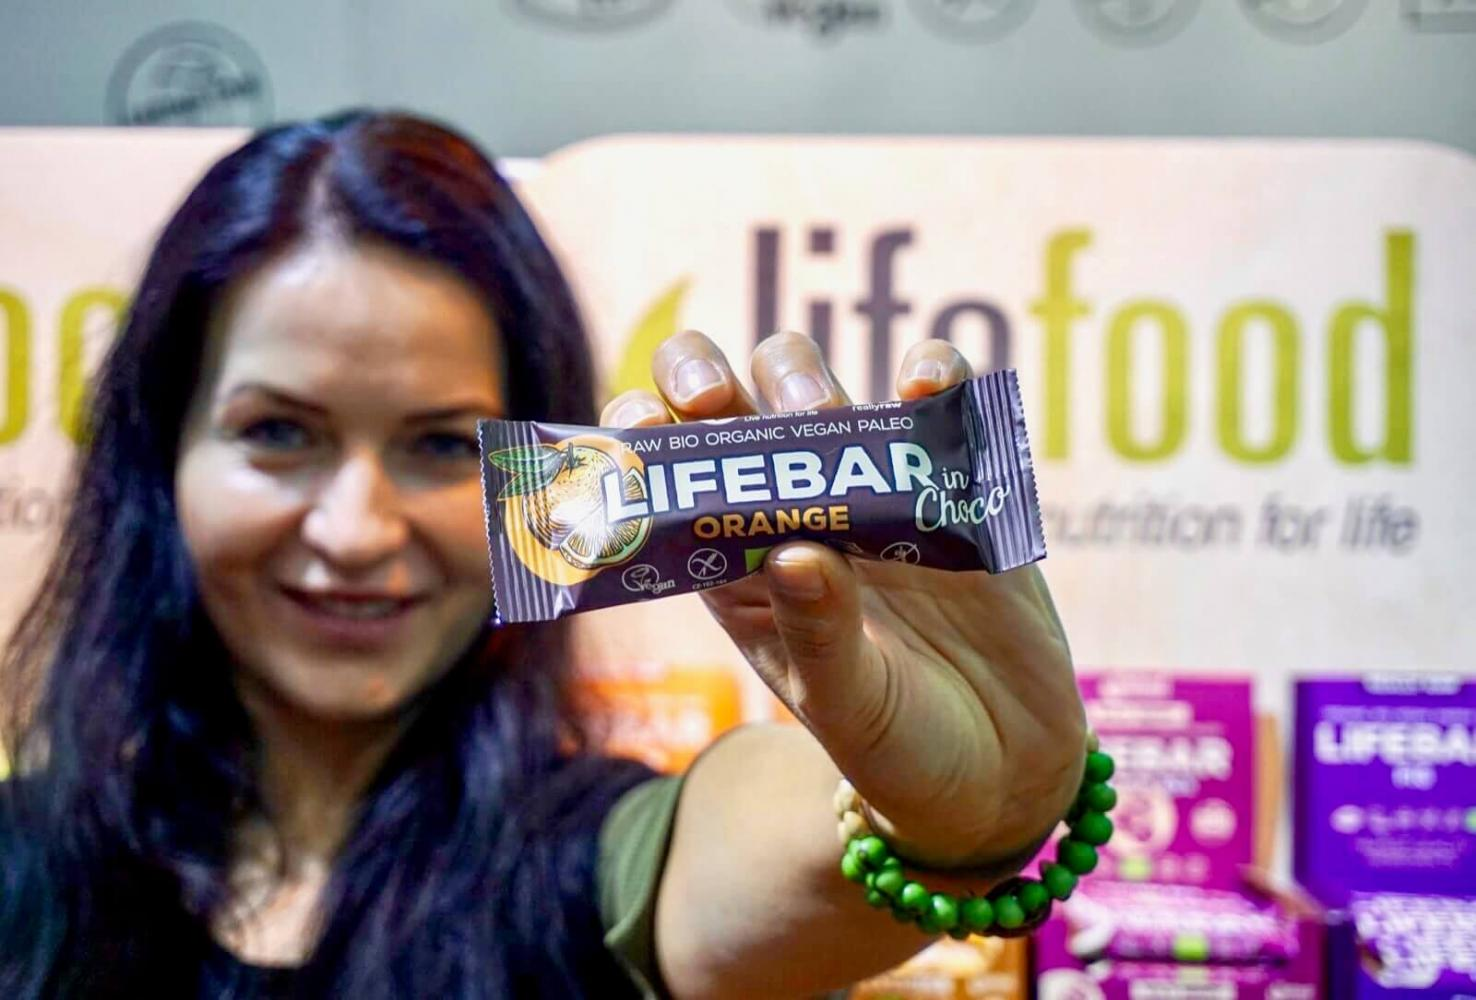 Lifefood owner Tereza is showing a new product - Lifebar coated with chocolated